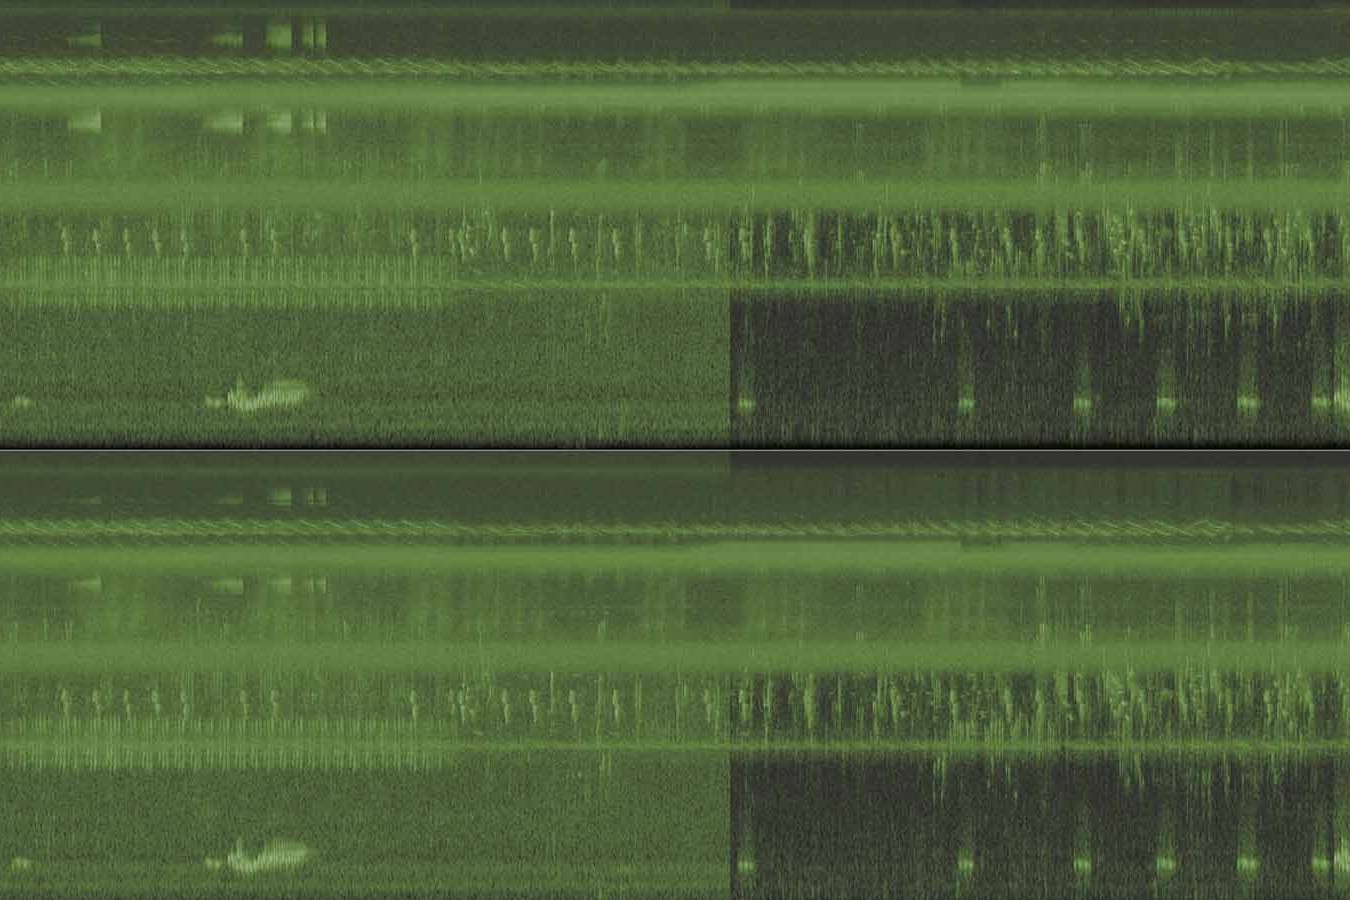 image of an audio spectrum, half of it containing broadband noise, the other half containing a cleaner signal with less noise